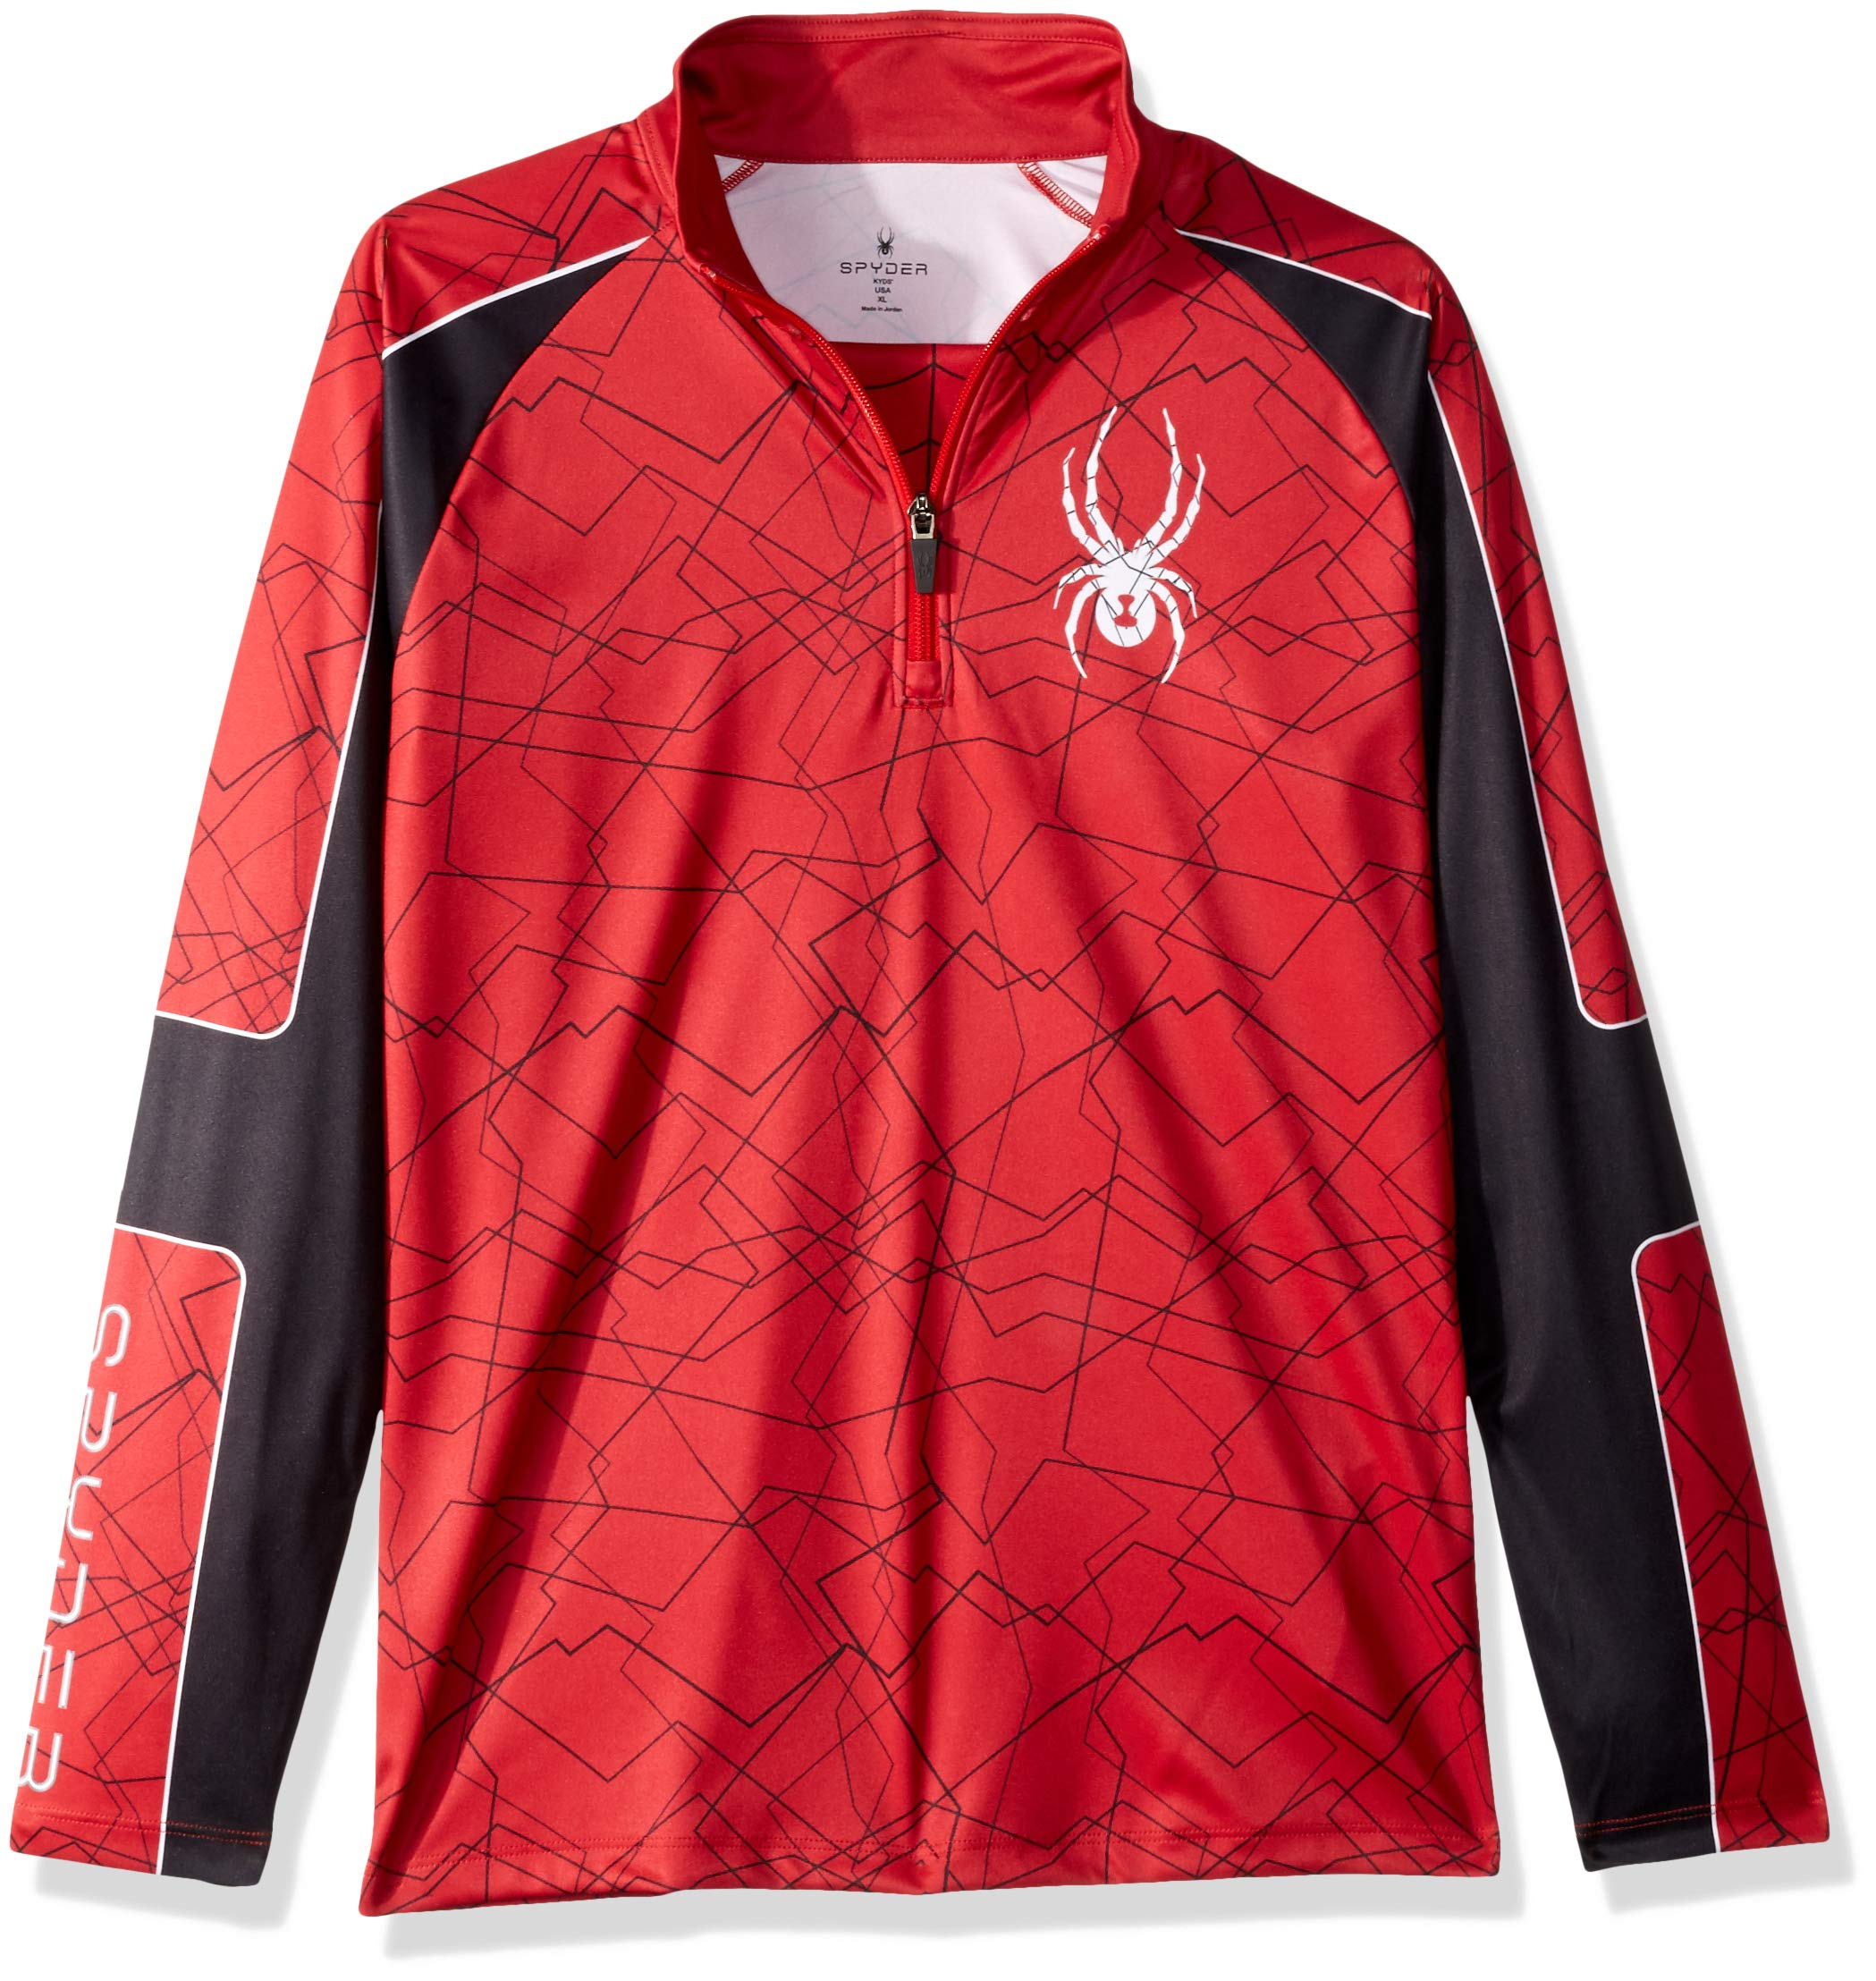 Spyder Boys' Limitless Challenger Half Zip T-neck Shirt, Red/Black/Red, Large by Spyder